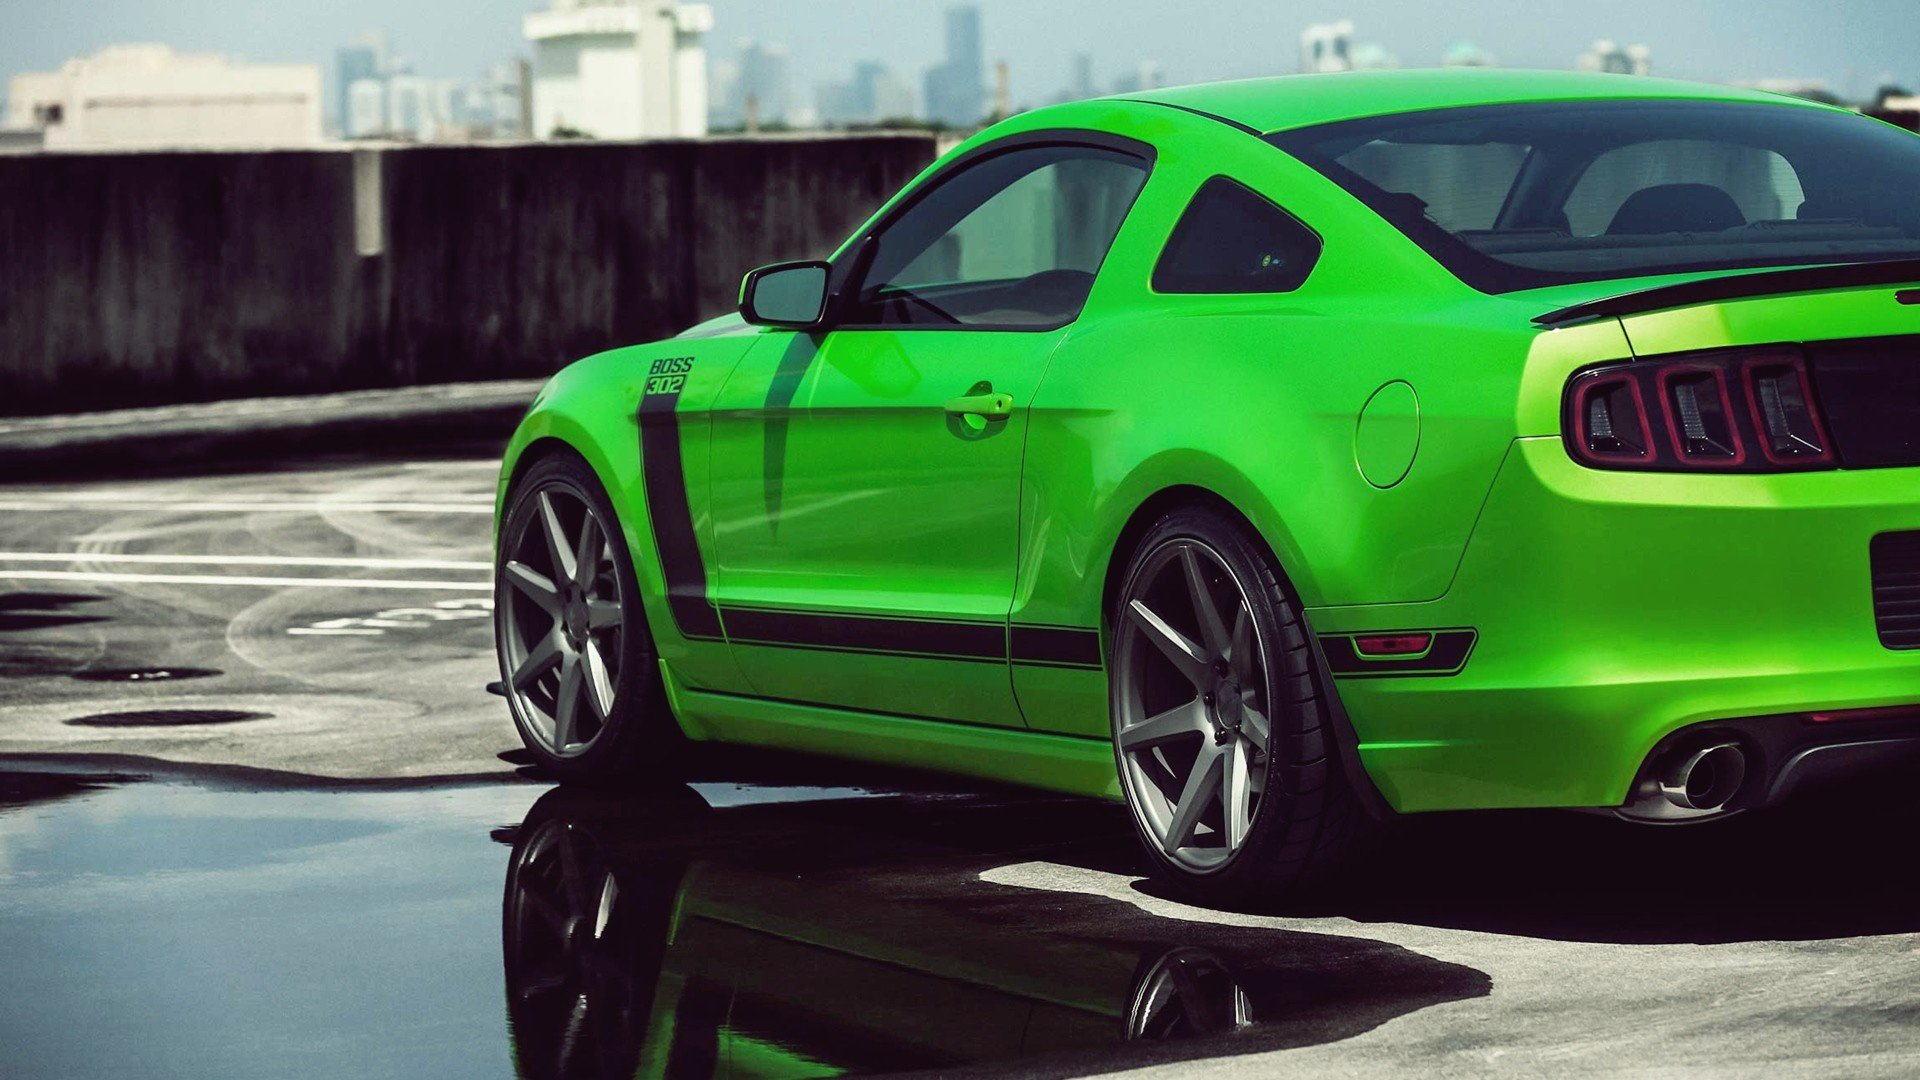 Green cars Ford vehicles Ford Mustang automotive Ford Mustang Boss 302 automobiles Ford Mustang Shelby wallpaper   1920x1080   237347   WallpaperUP & Green cars Ford vehicles Ford Mustang automotive Ford Mustang Boss ... markmcfarlin.com